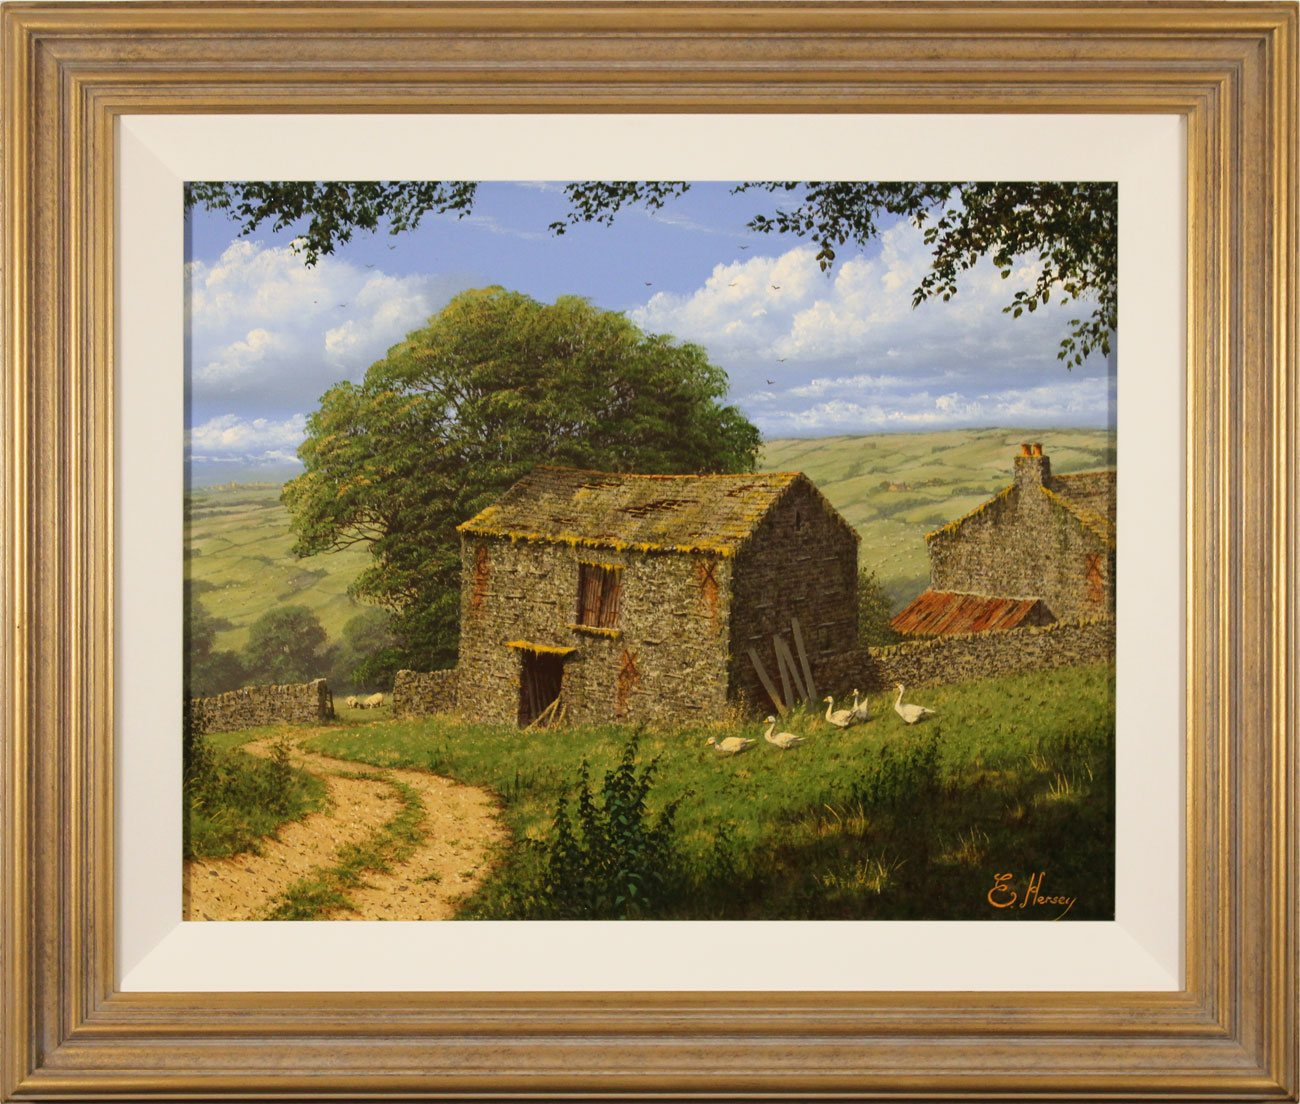 Edward Hersey, Original oil painting on canvas, Summer in the Yorkshire Dales. Click to enlarge